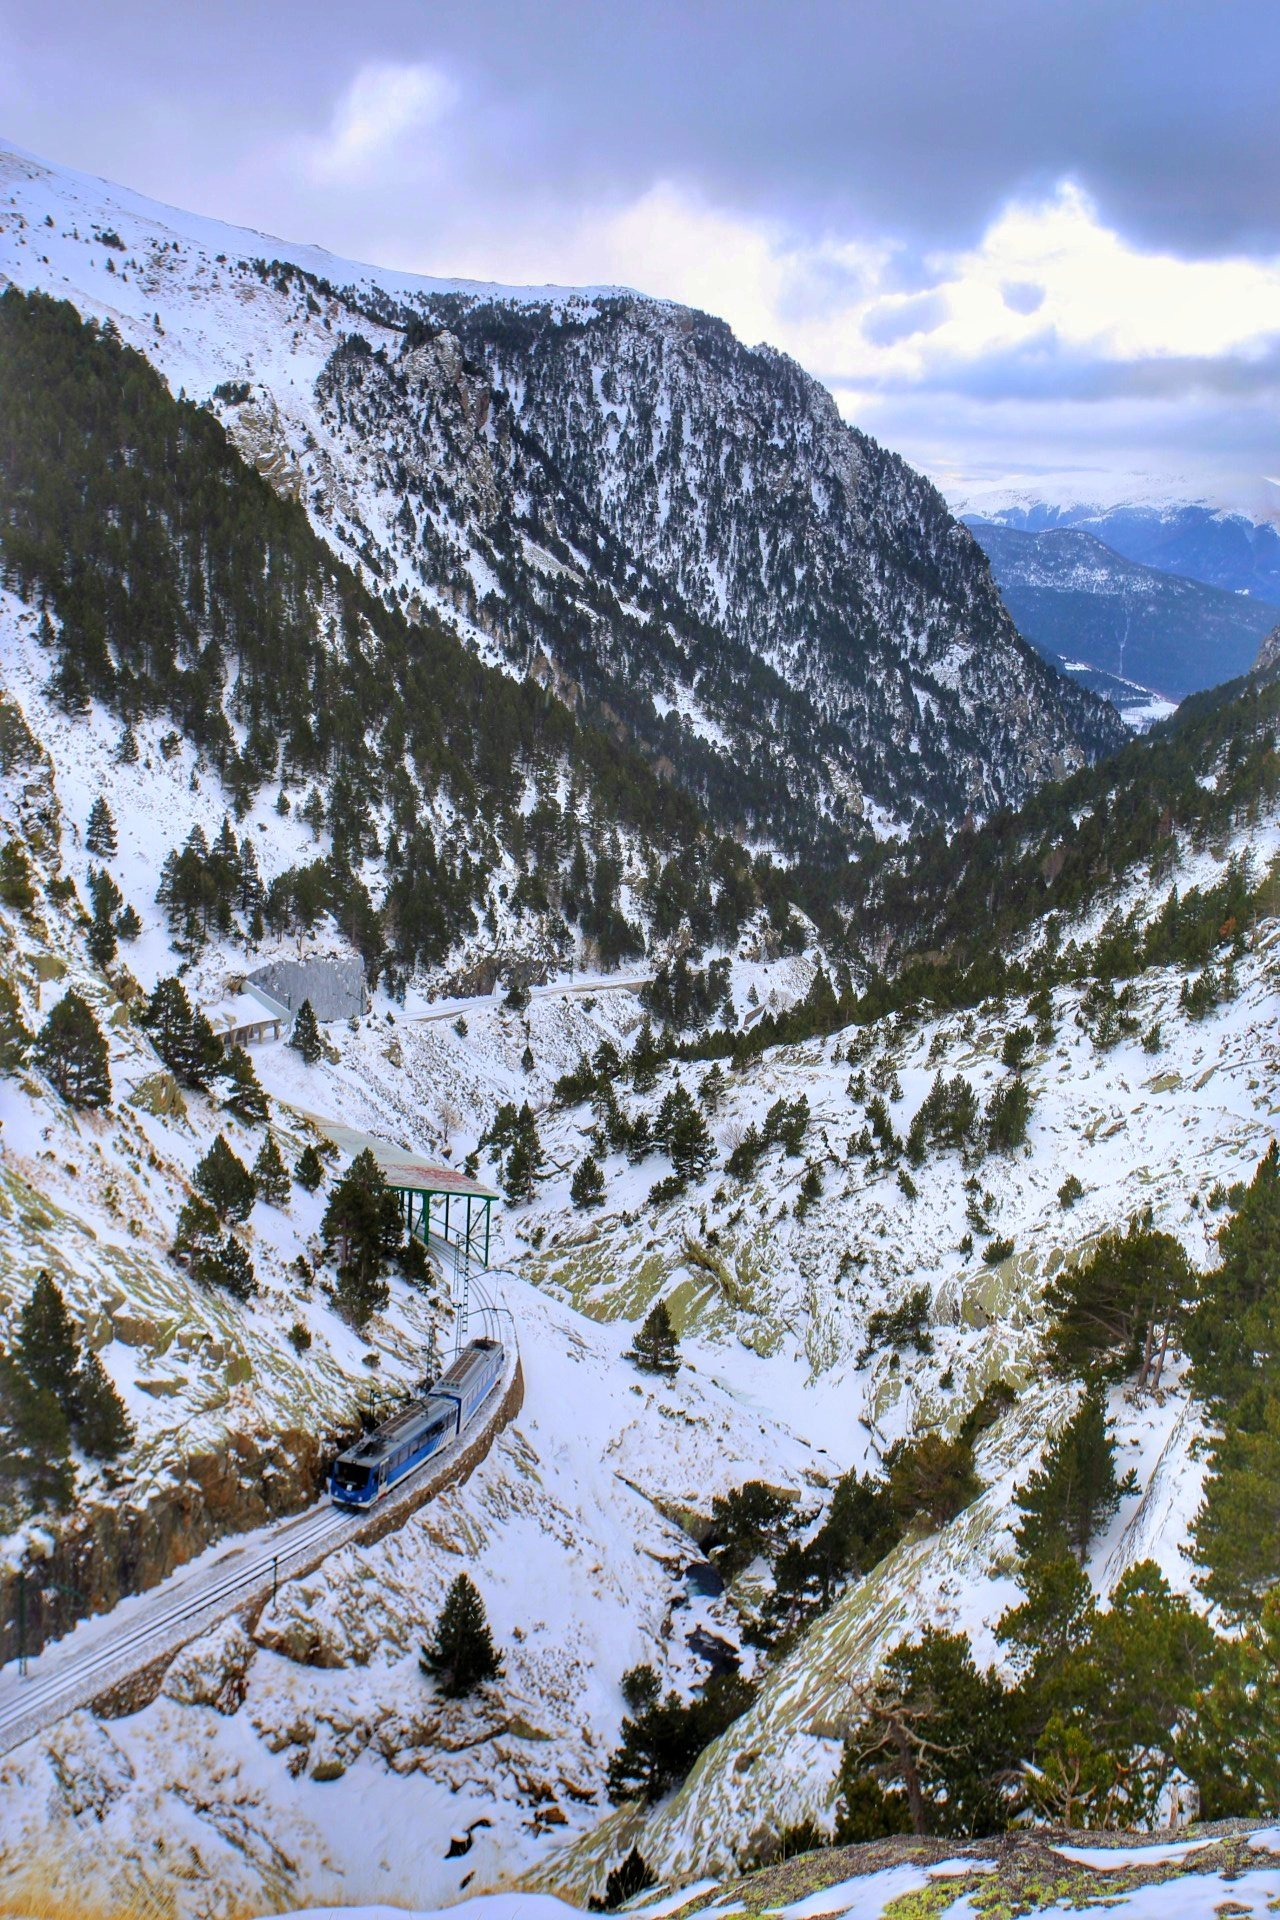 Today we're taking the rack rail train back out of the @ValldeNuria - looking forward to the views :) #inPyrenees https://t.co/ugDa3hKc3v